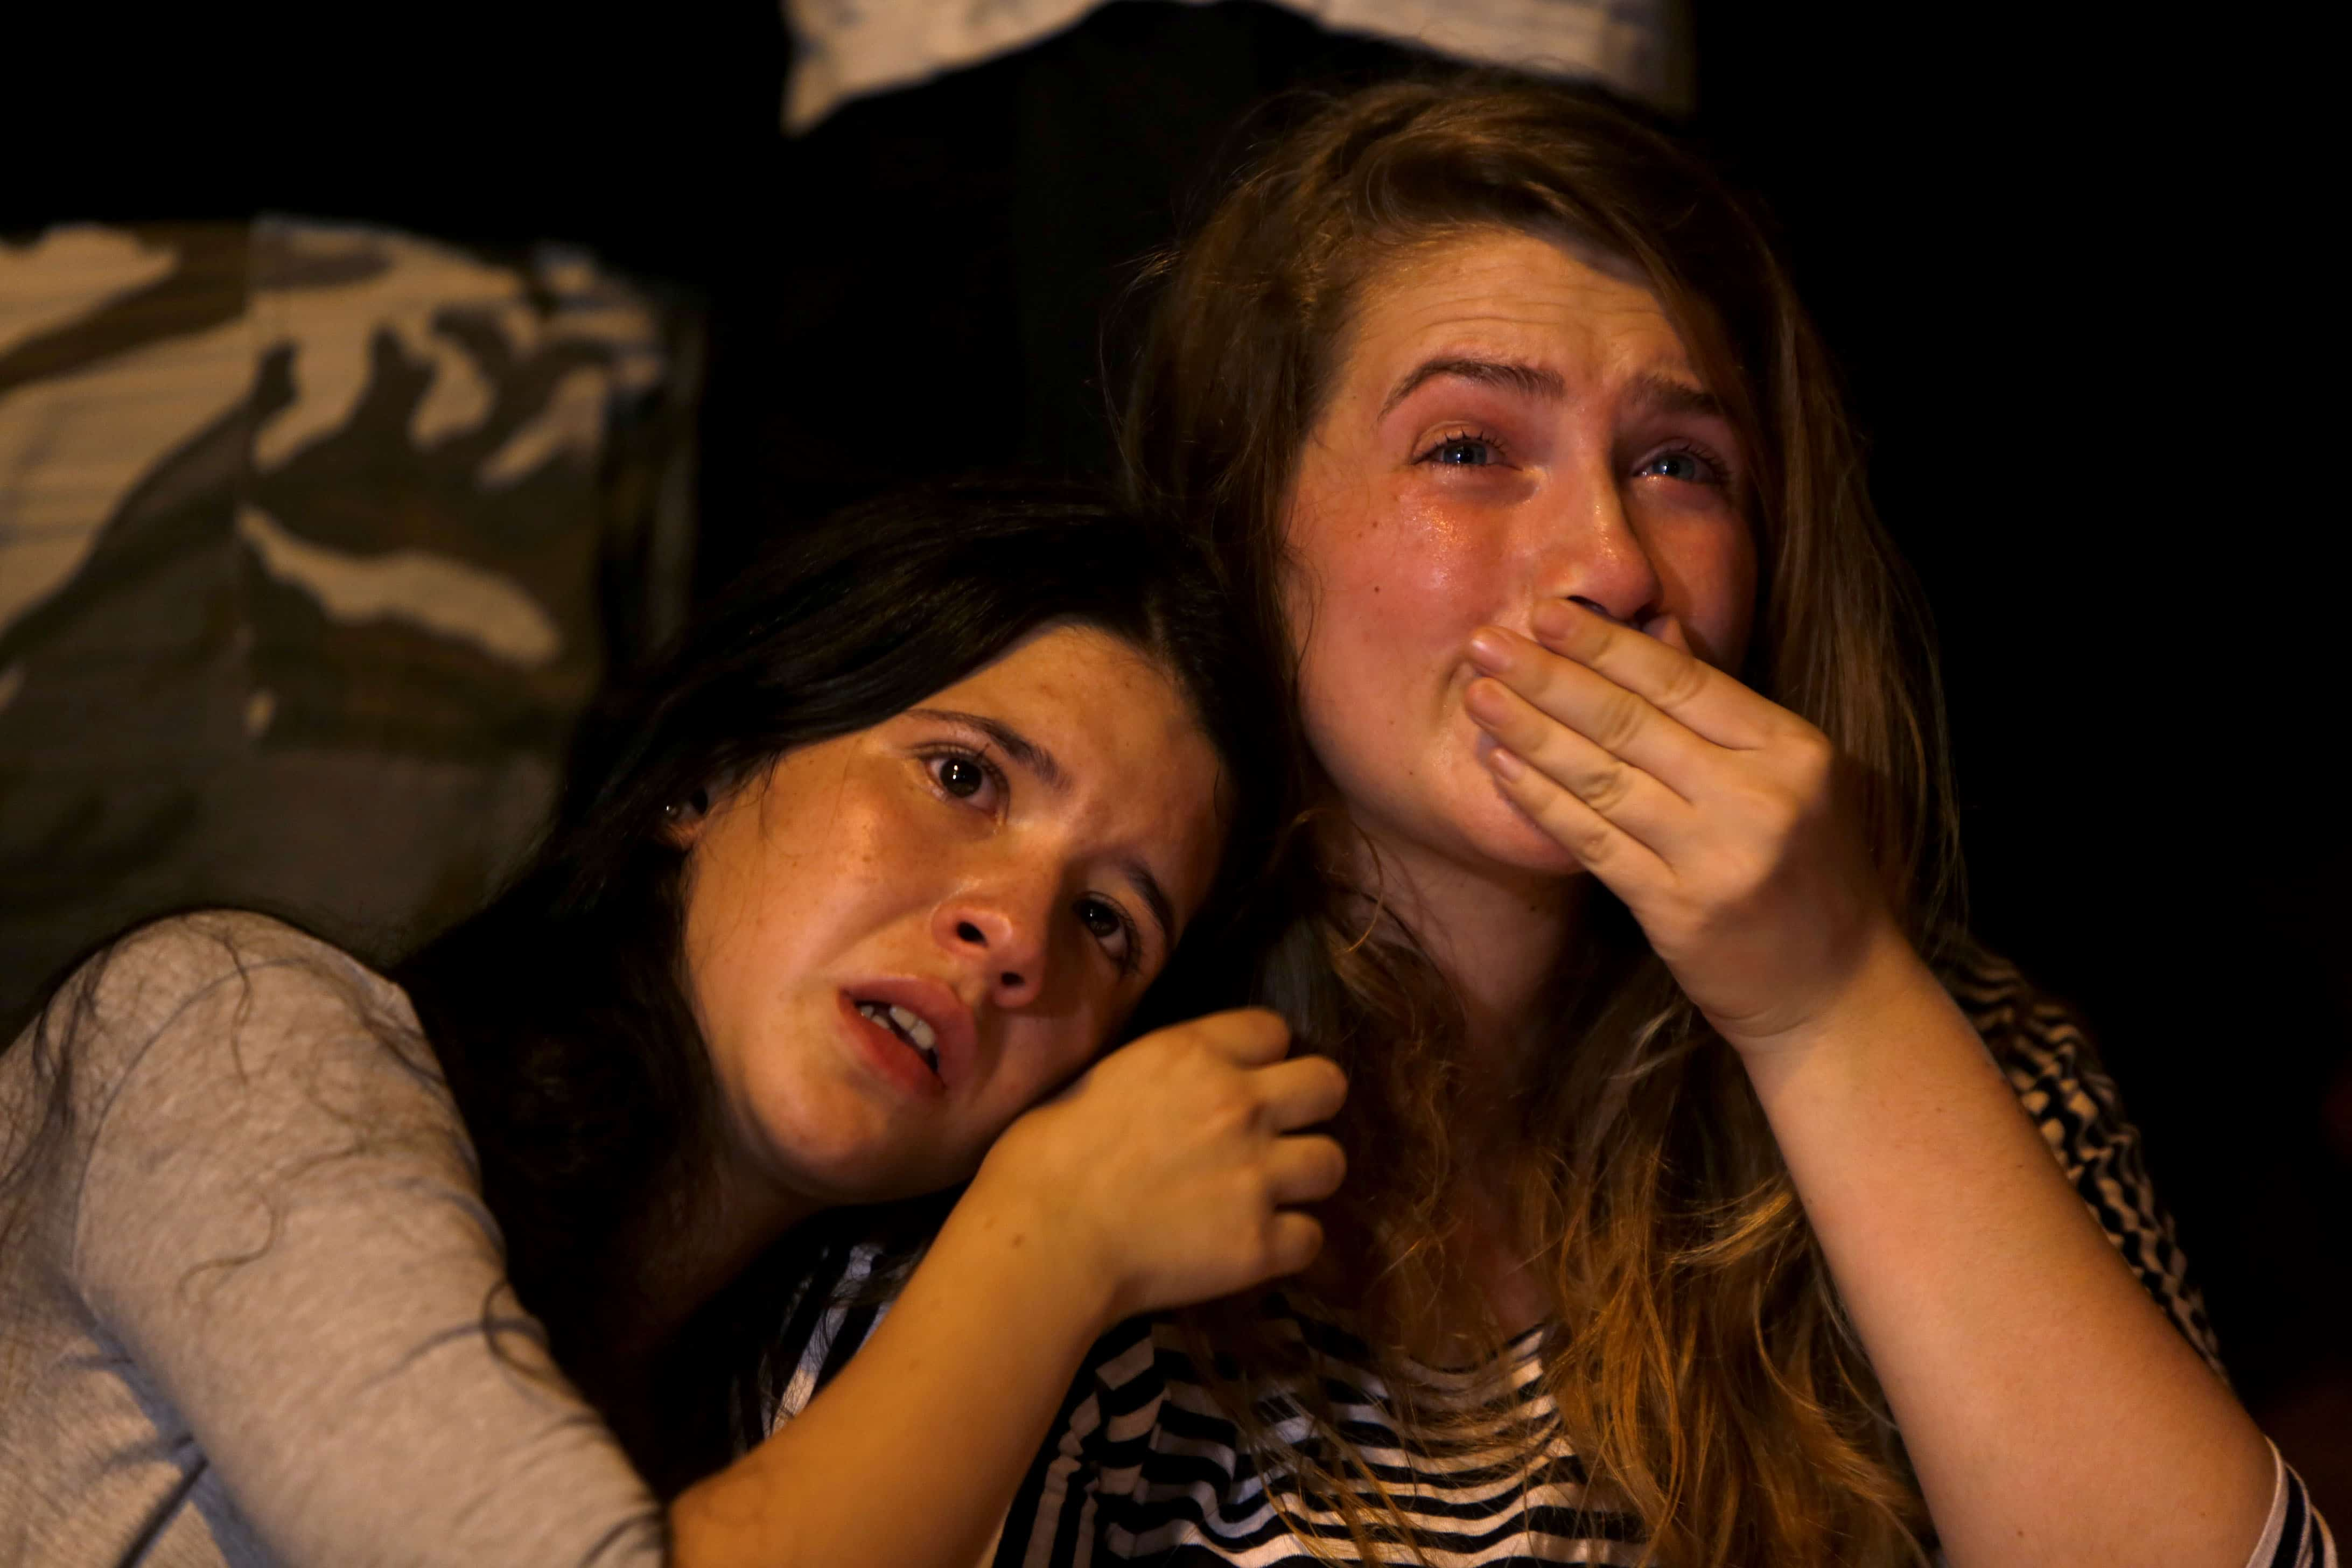 Israeli girls cry during a gathering of hundreds of friends, classmates, teachers, members of the gay community and supporters in downtown Jerusalem.